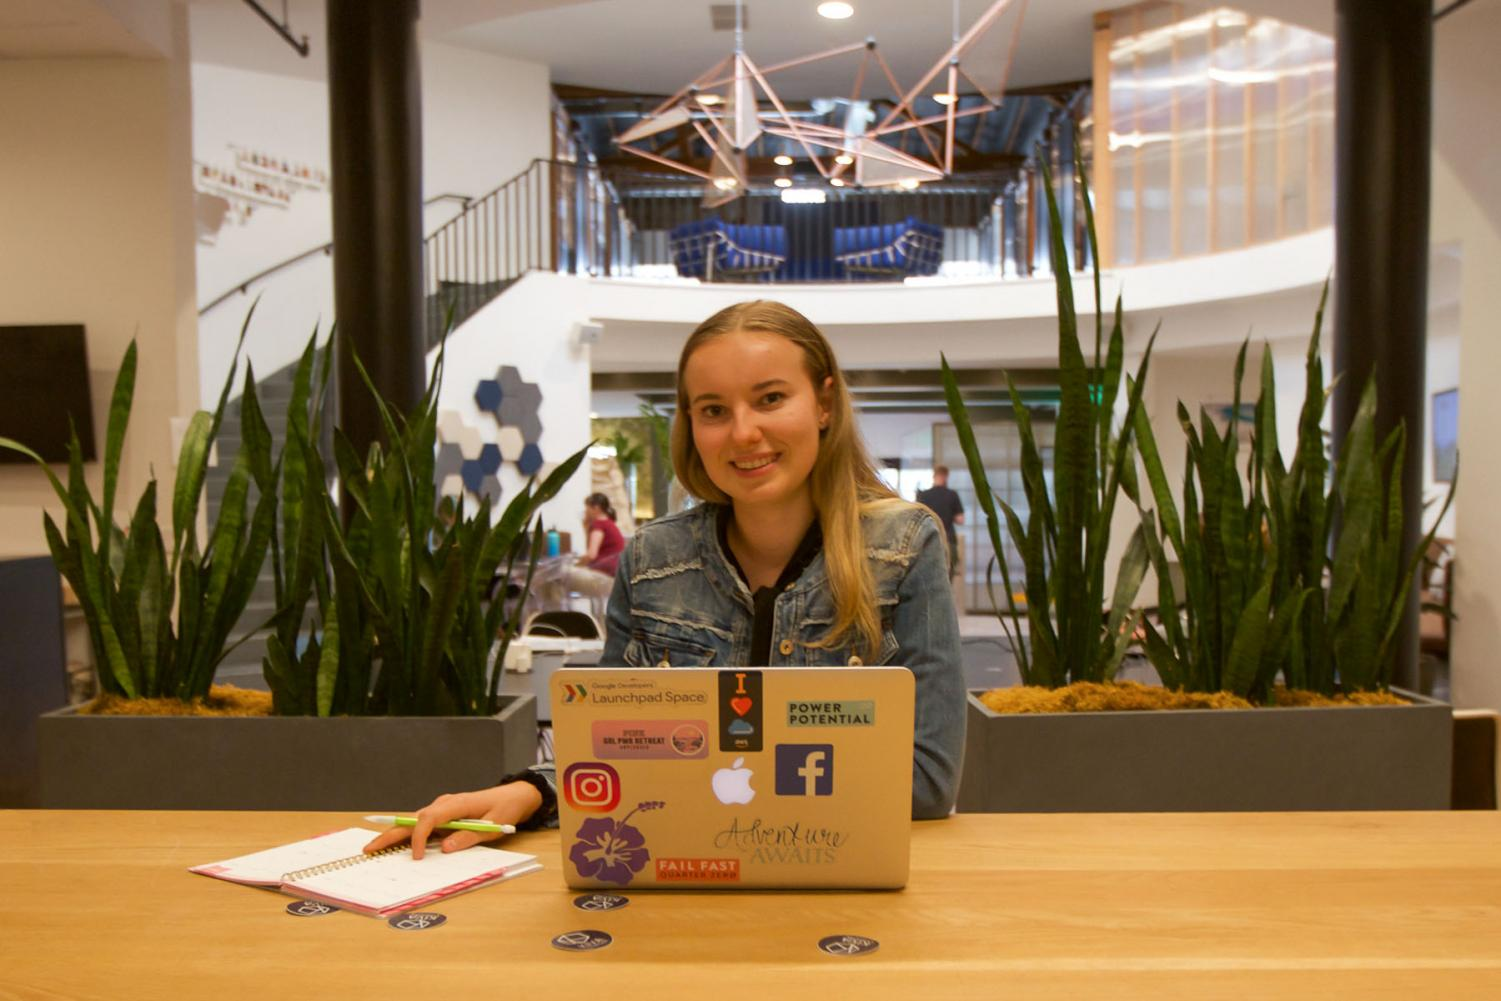 18 year-old former dual-enrollment City College student Amanda Moores, works on the development of her business Flora, in her typical workspace at Kiva Coworks on Wednesday, Oct. 16, 2019, in Santa Barbara, Calif. Flora will be an app designed to boost wellness and reduce stress levels.